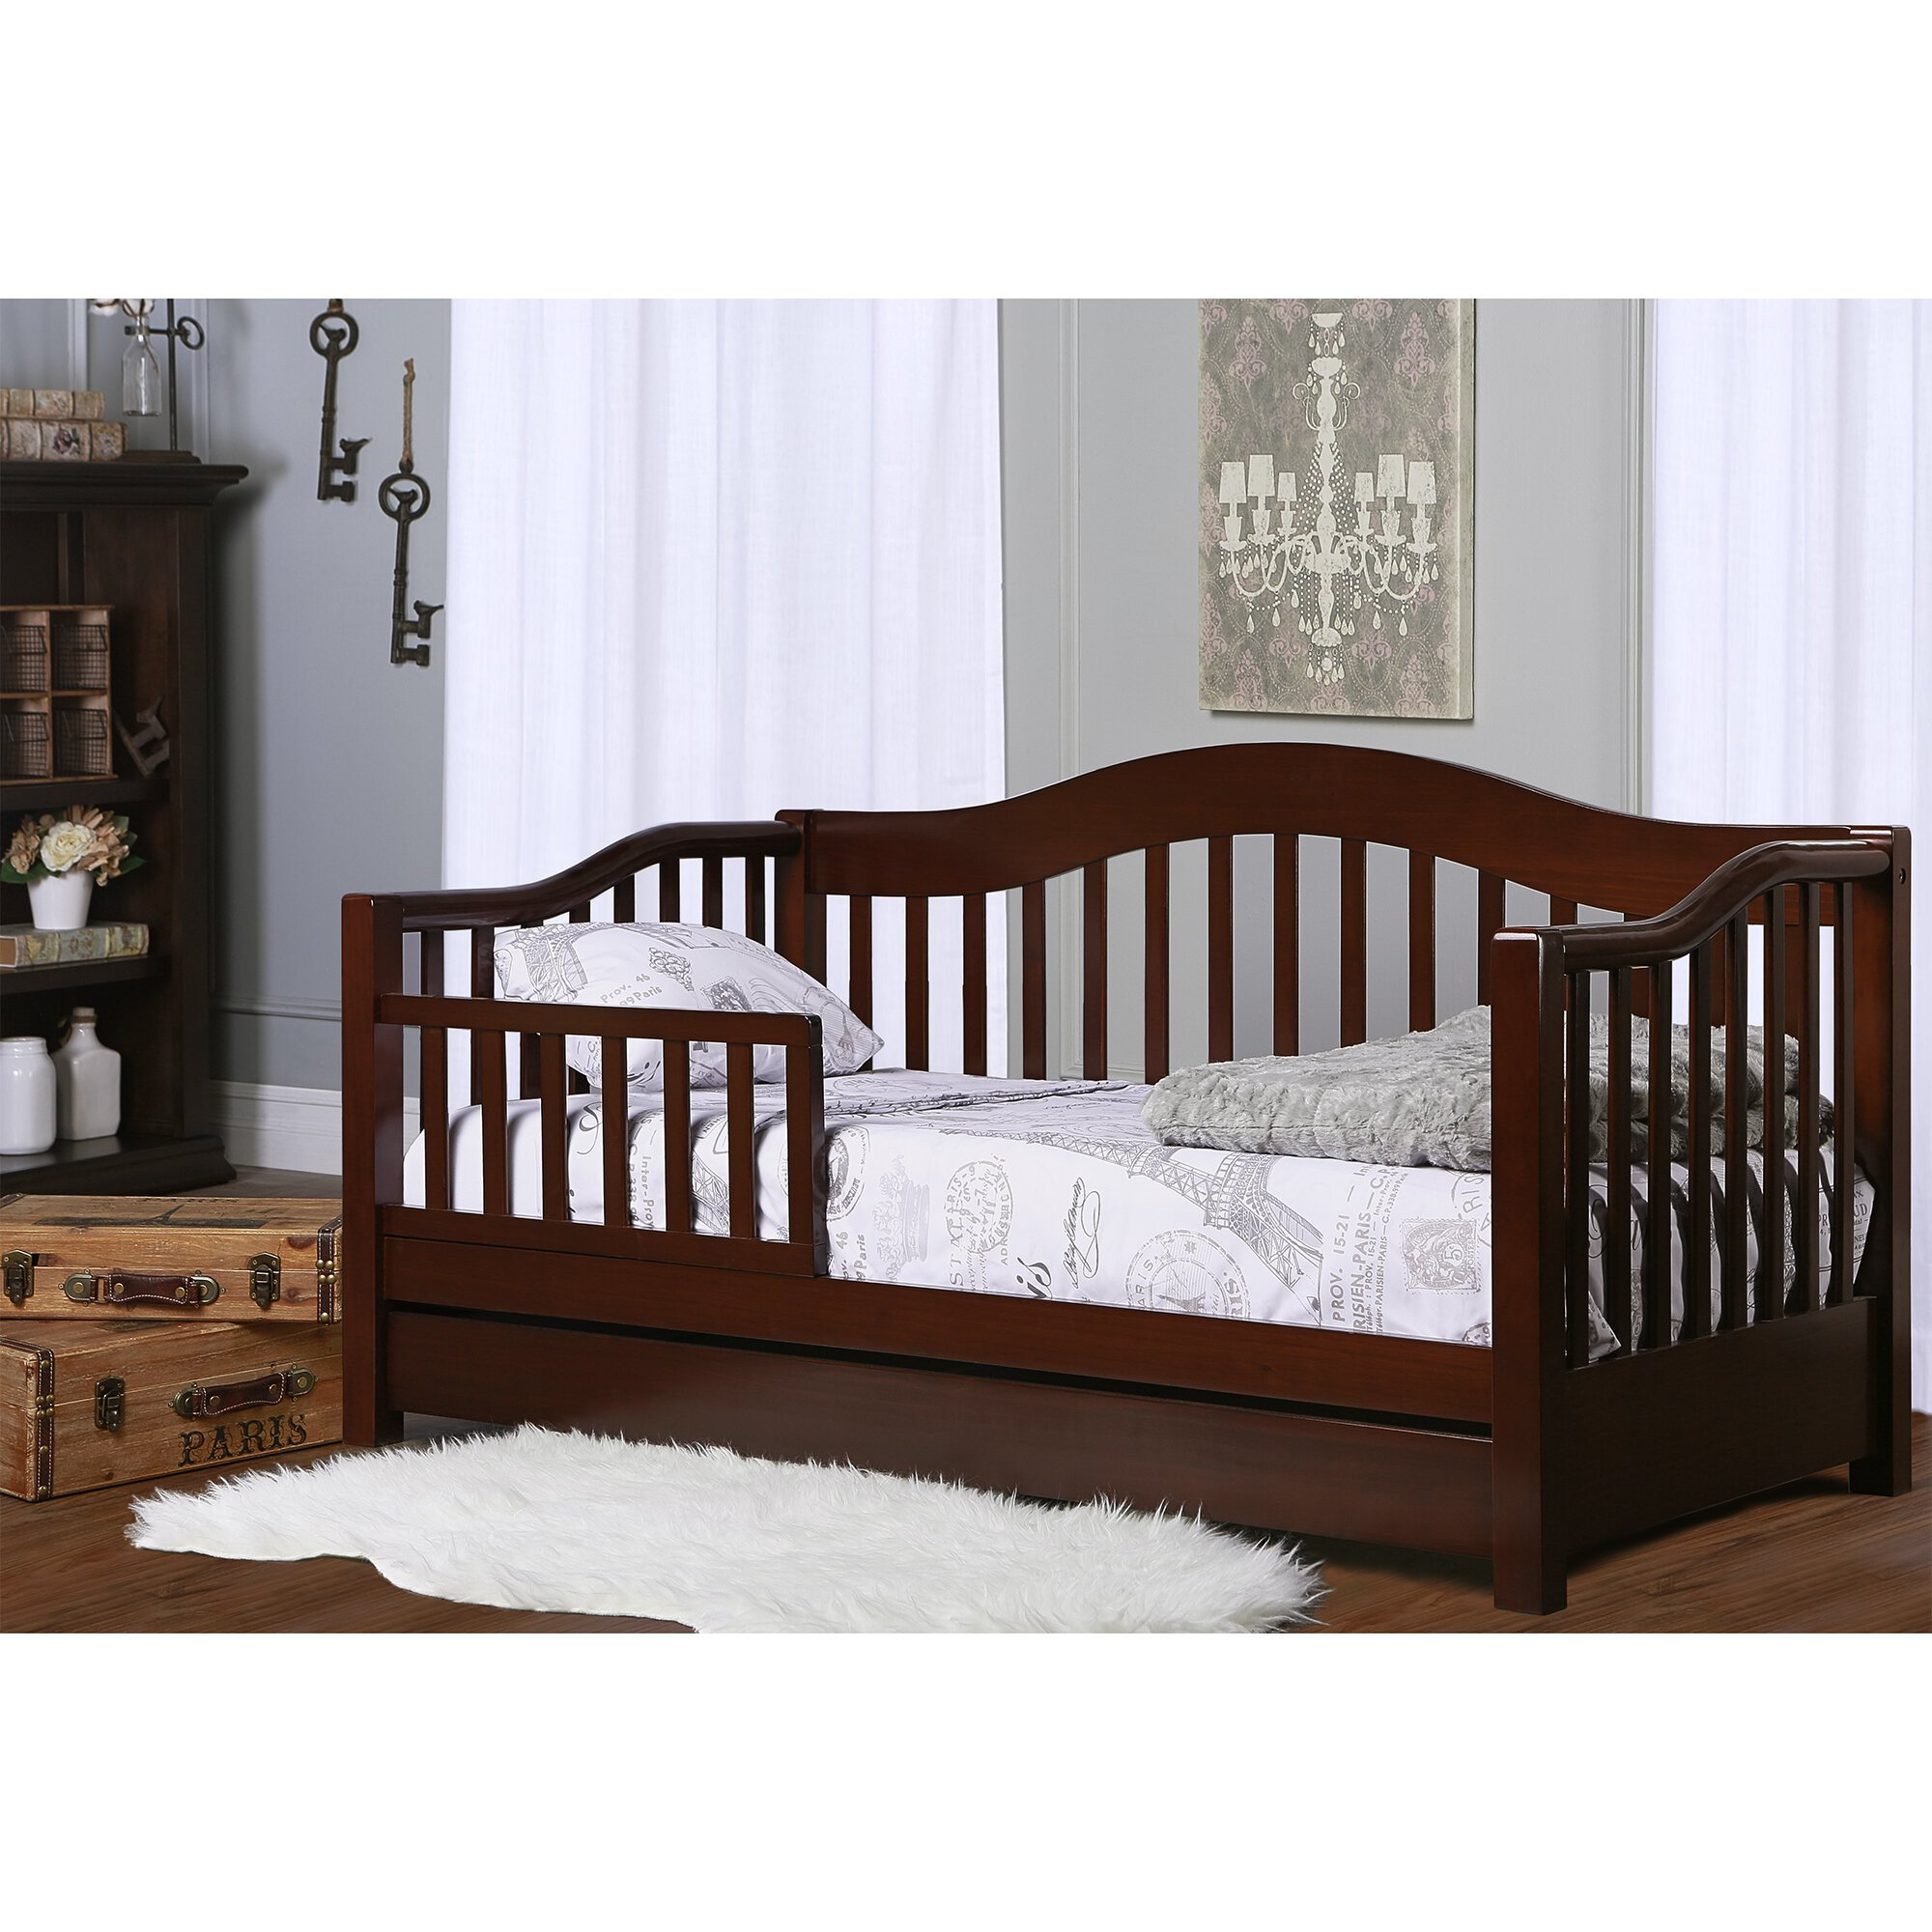 Paris themed Bedroom Set Luxury Clarkson toddler Bed